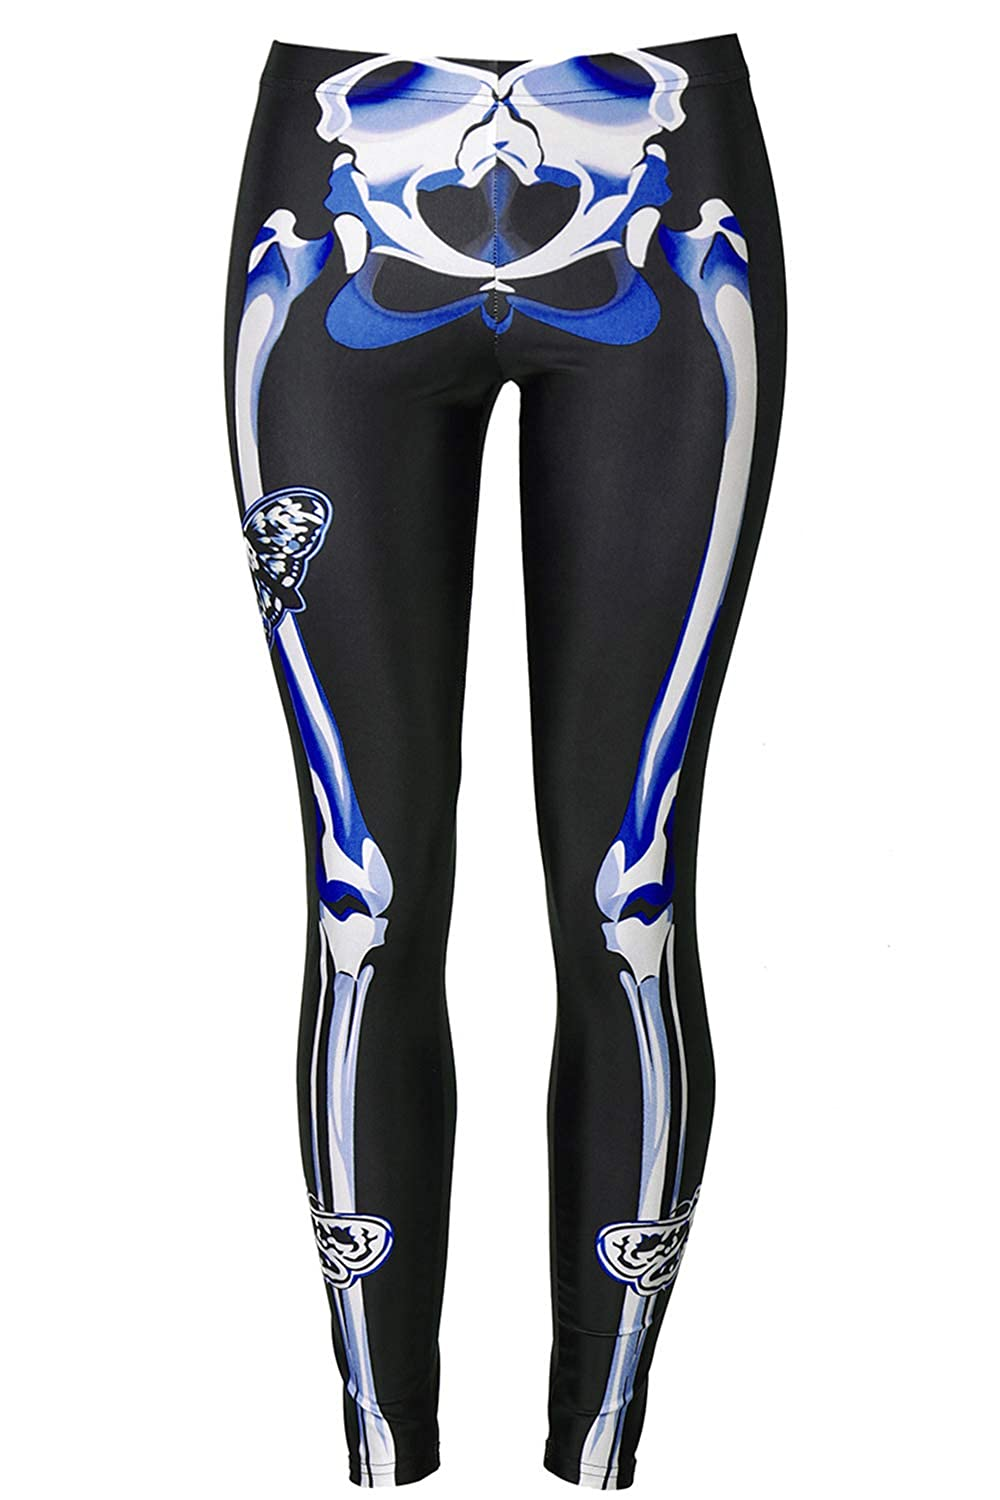 70ab646041d5f GLUDEAR Women's Halloween Print High Waist Leggings Stretch Full Length Tights  Workout Pants at Amazon Women's Clothing store: